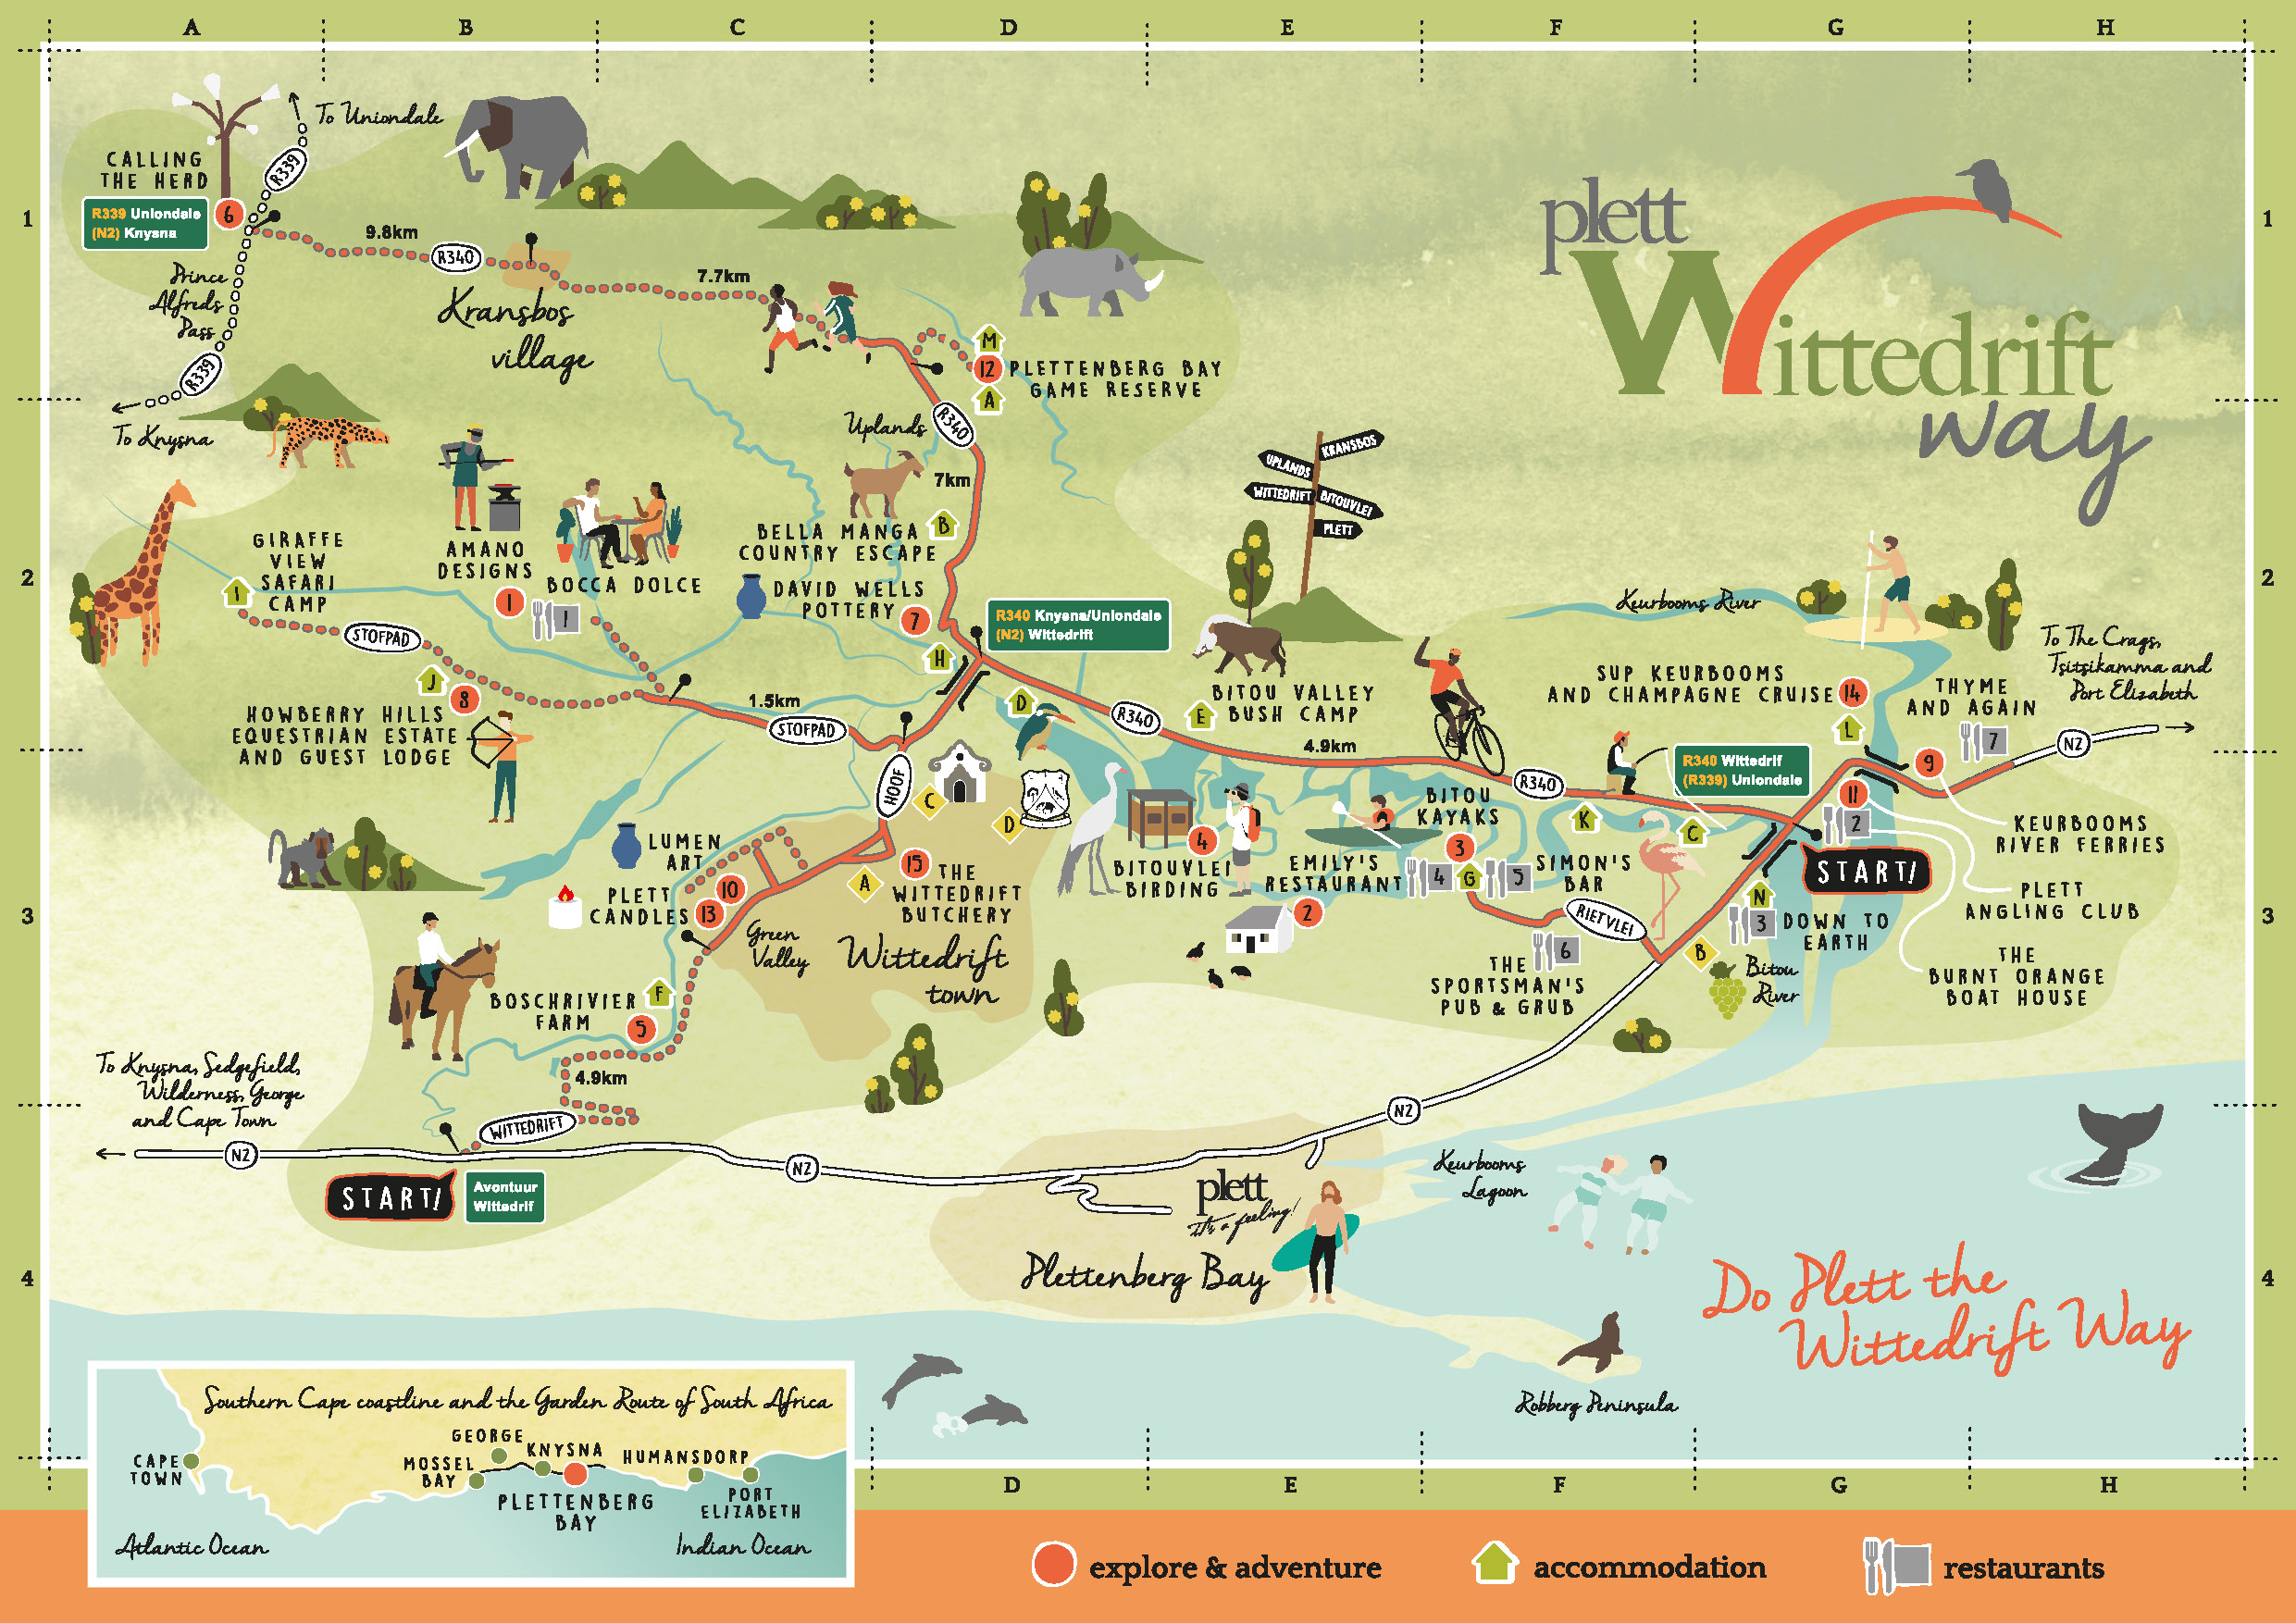 Wittedrift Way map 2019